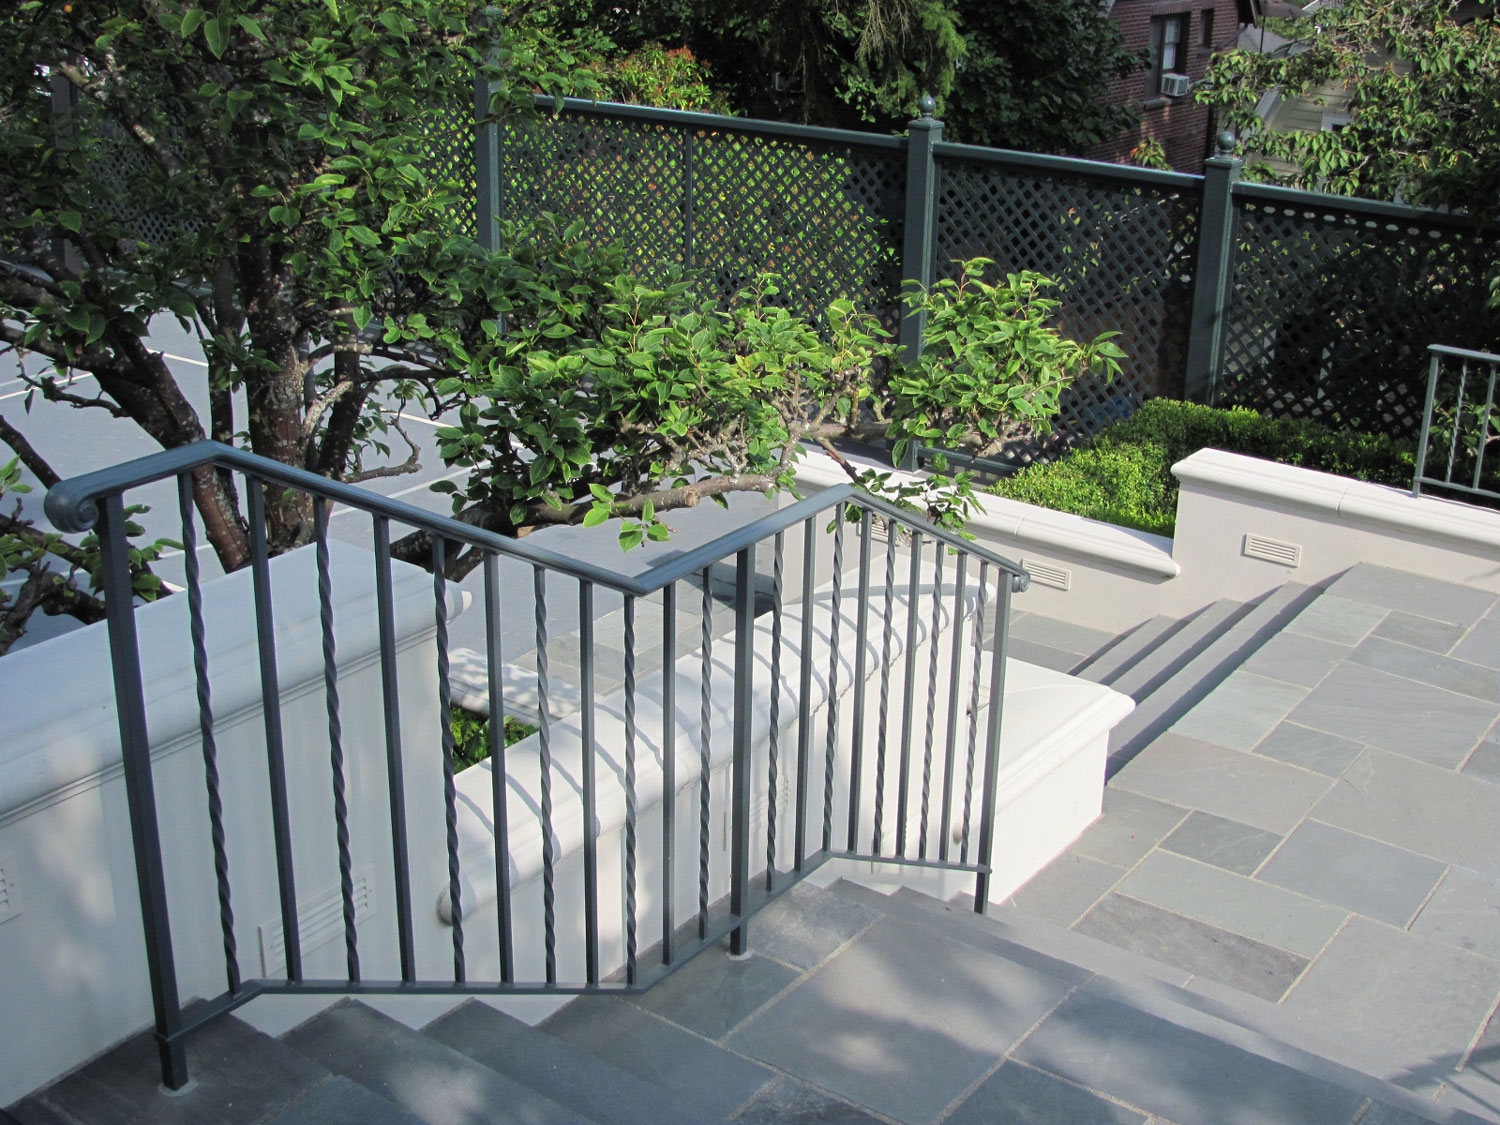 Iron Handrails and Guardrails for Slate Patio - Going Down Stairs - Seattle, WA